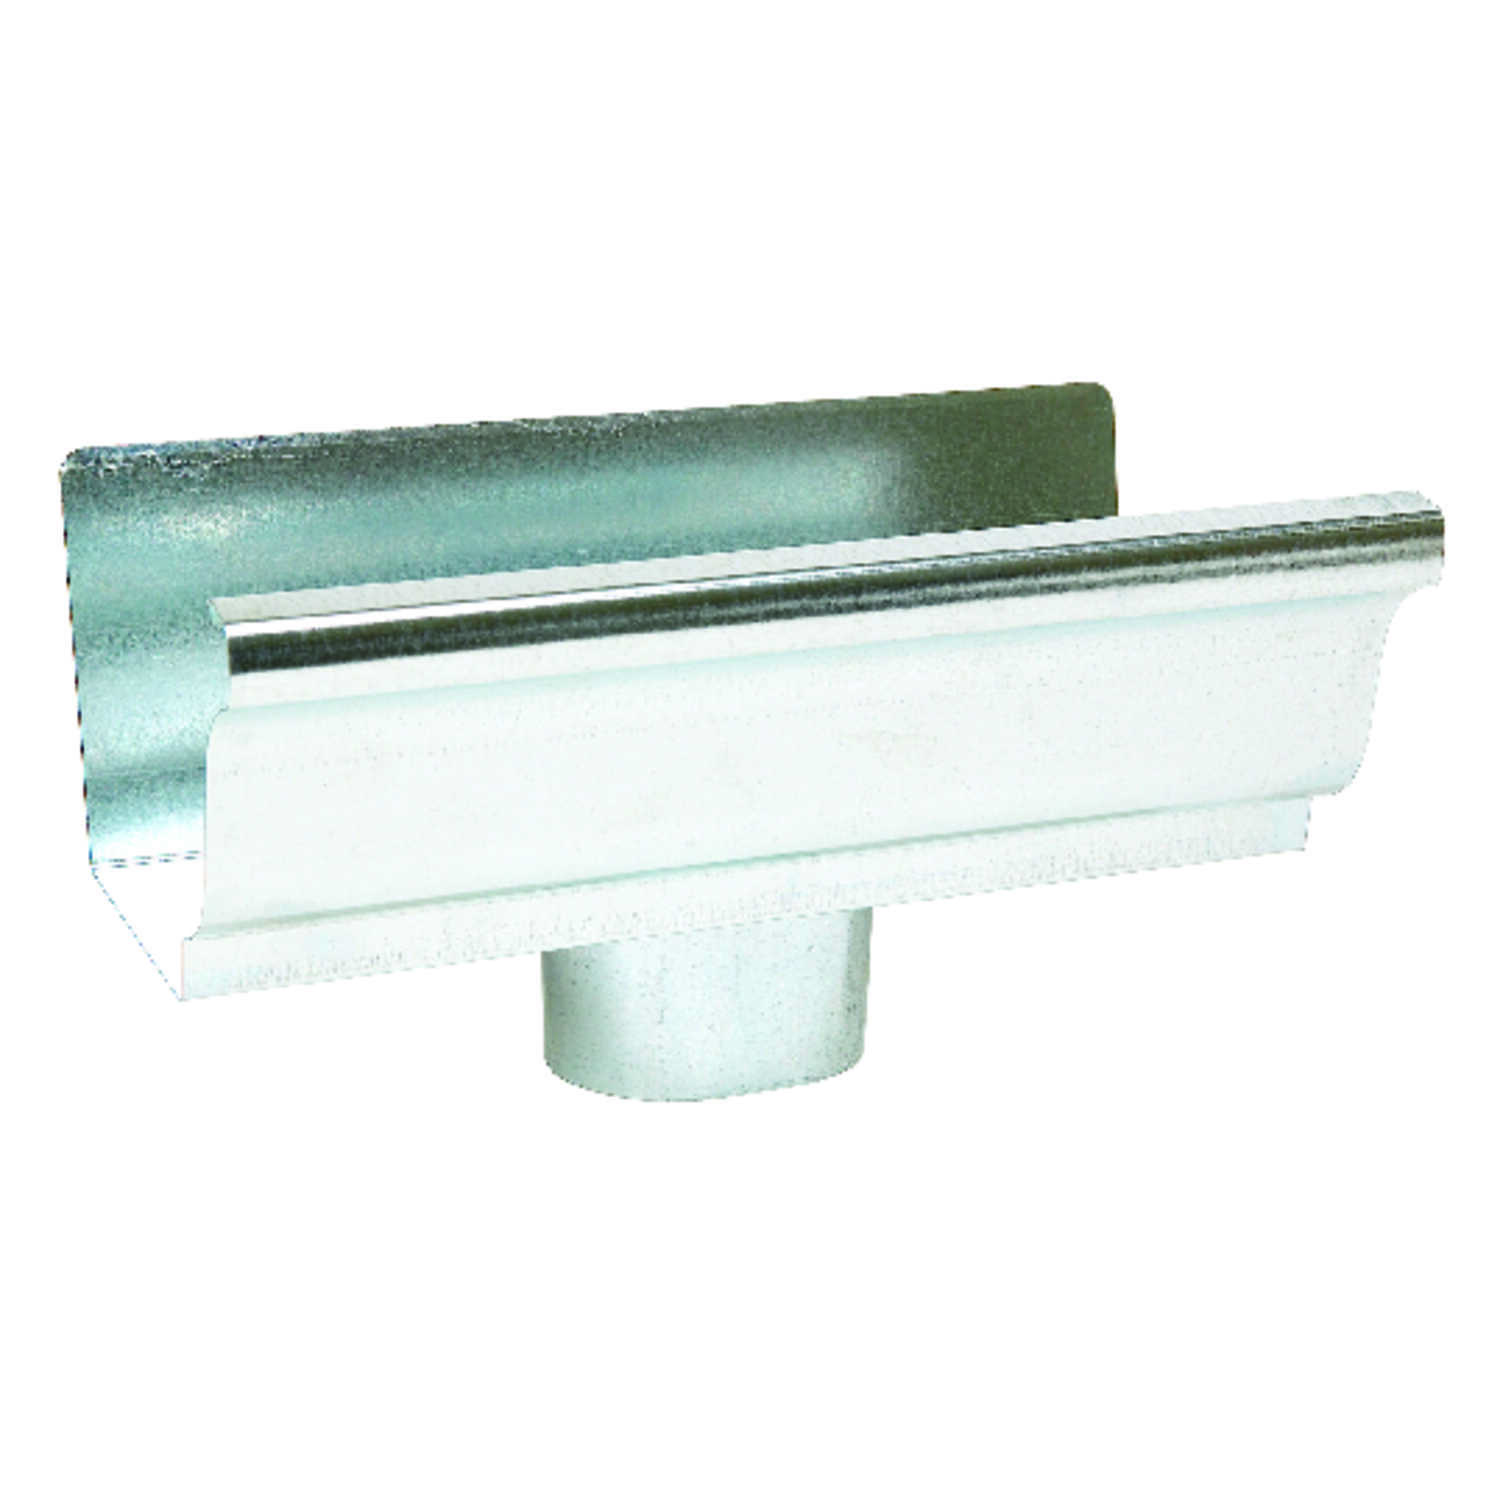 Amerimax  4.5 in. H x 4.5 in. W x 8 in. L Metallic  Galvanized Steel  K  Gutter Drop Outlet